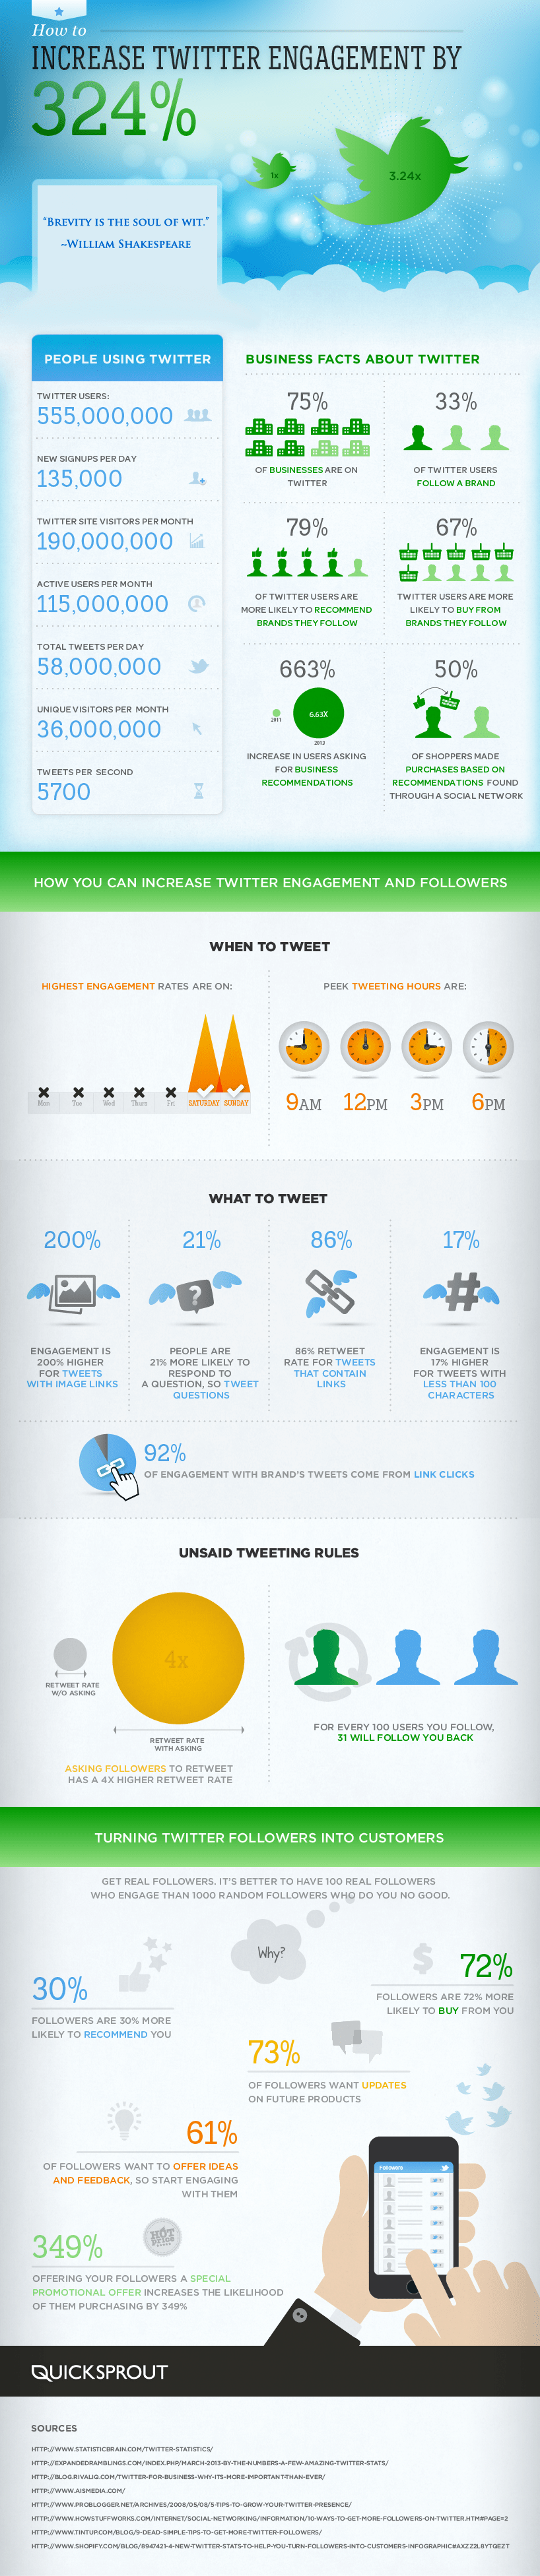 INFOGRAPHIC: How To TRIPLE Your Twitter Engagement